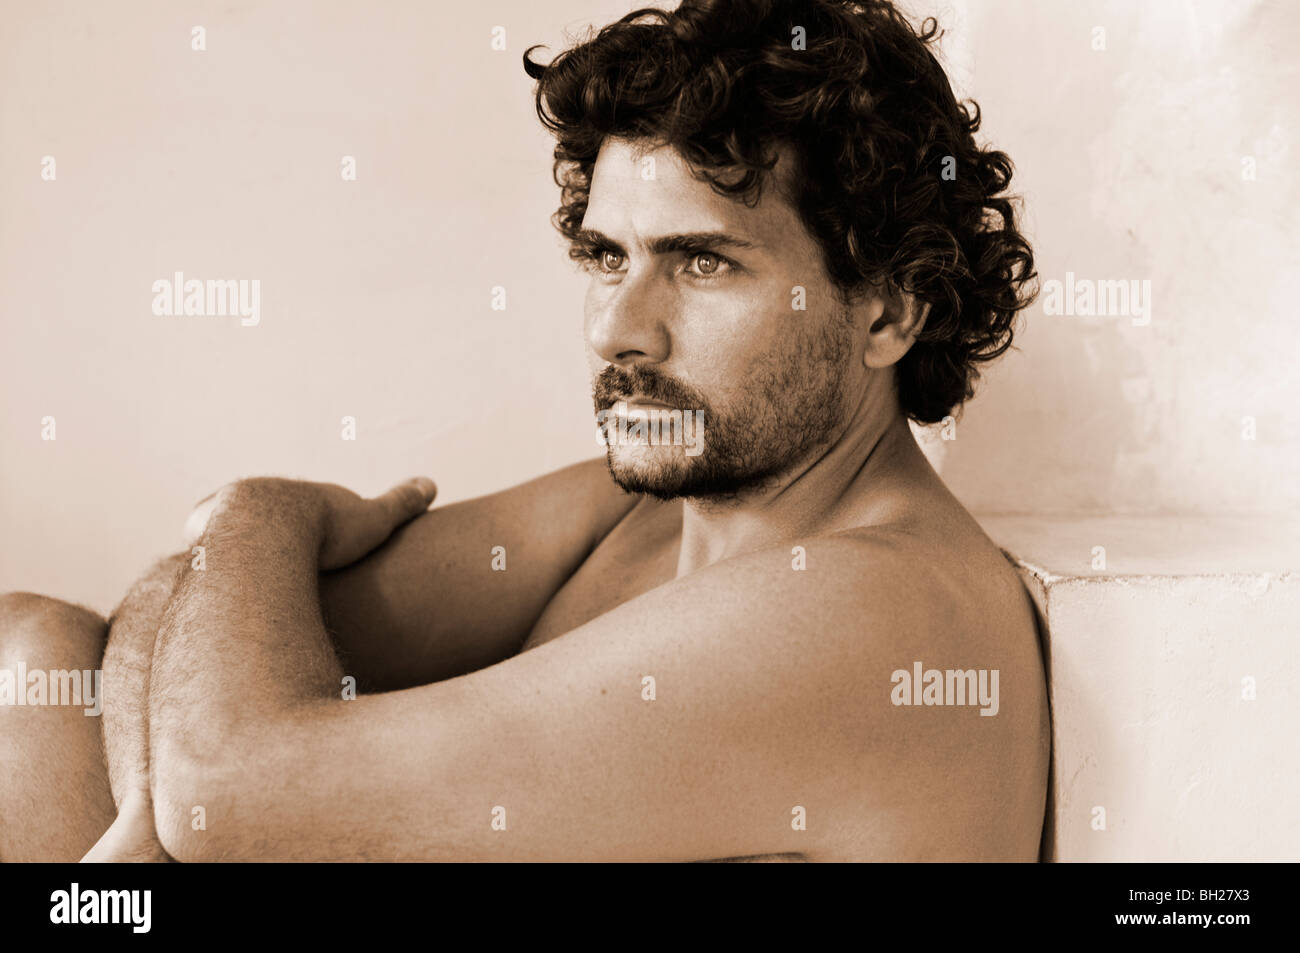 Handsome Young Male Nude With Curly Hair, Mustache And -2791